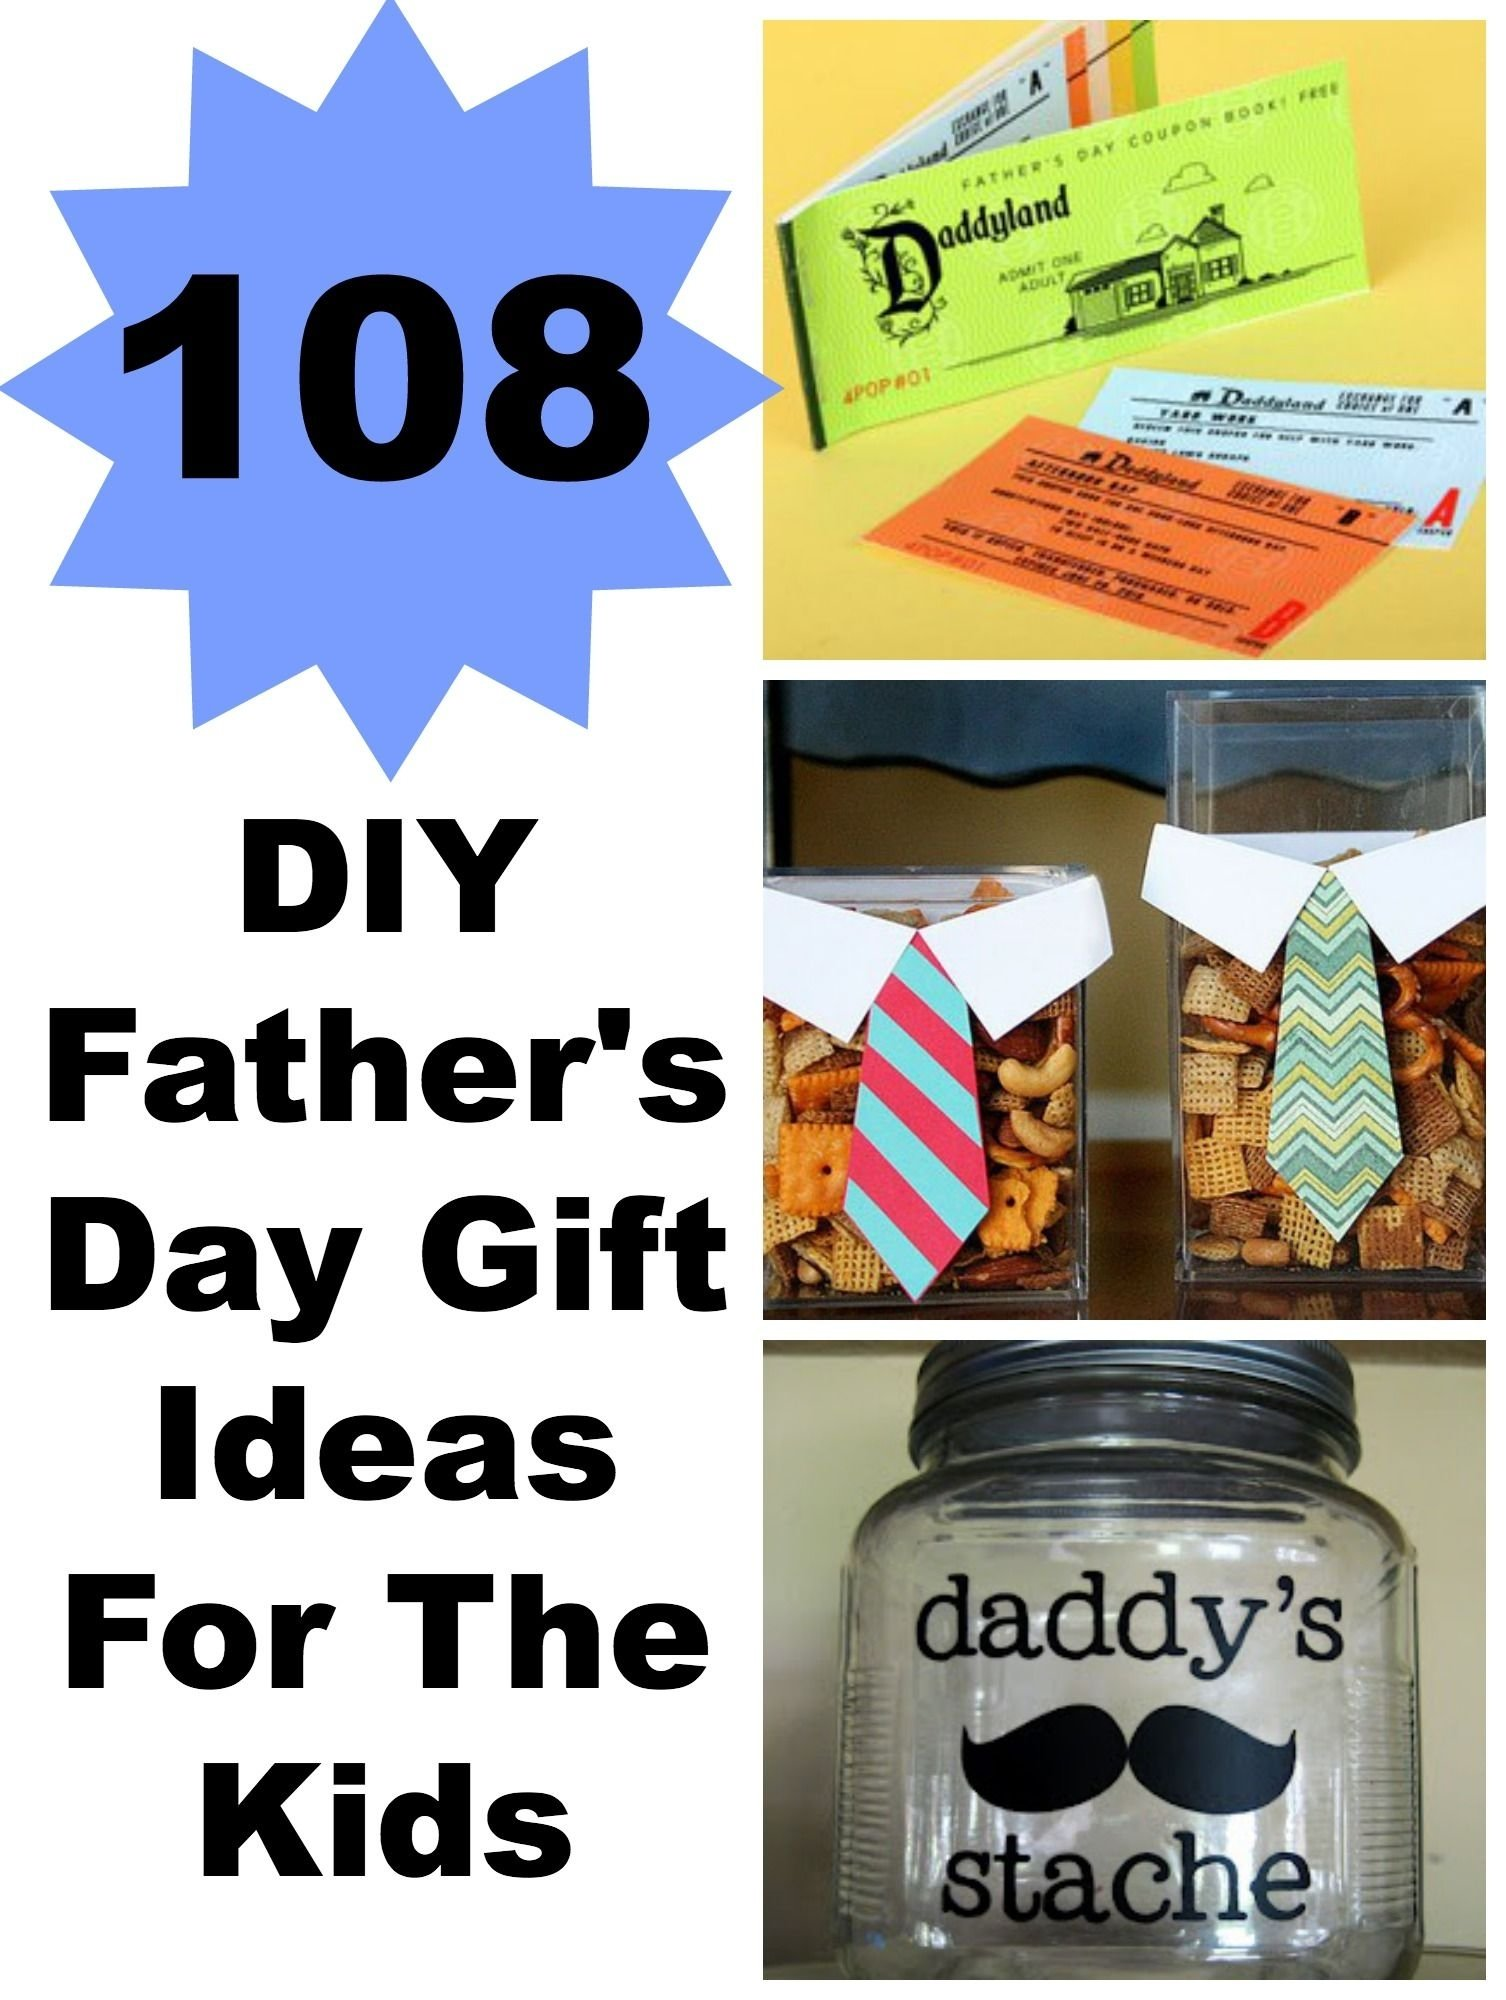 10 Perfect Fathers Day Homemade Gift Ideas 108 diy fathers day gift ideas for the kids easy diy projects 2020